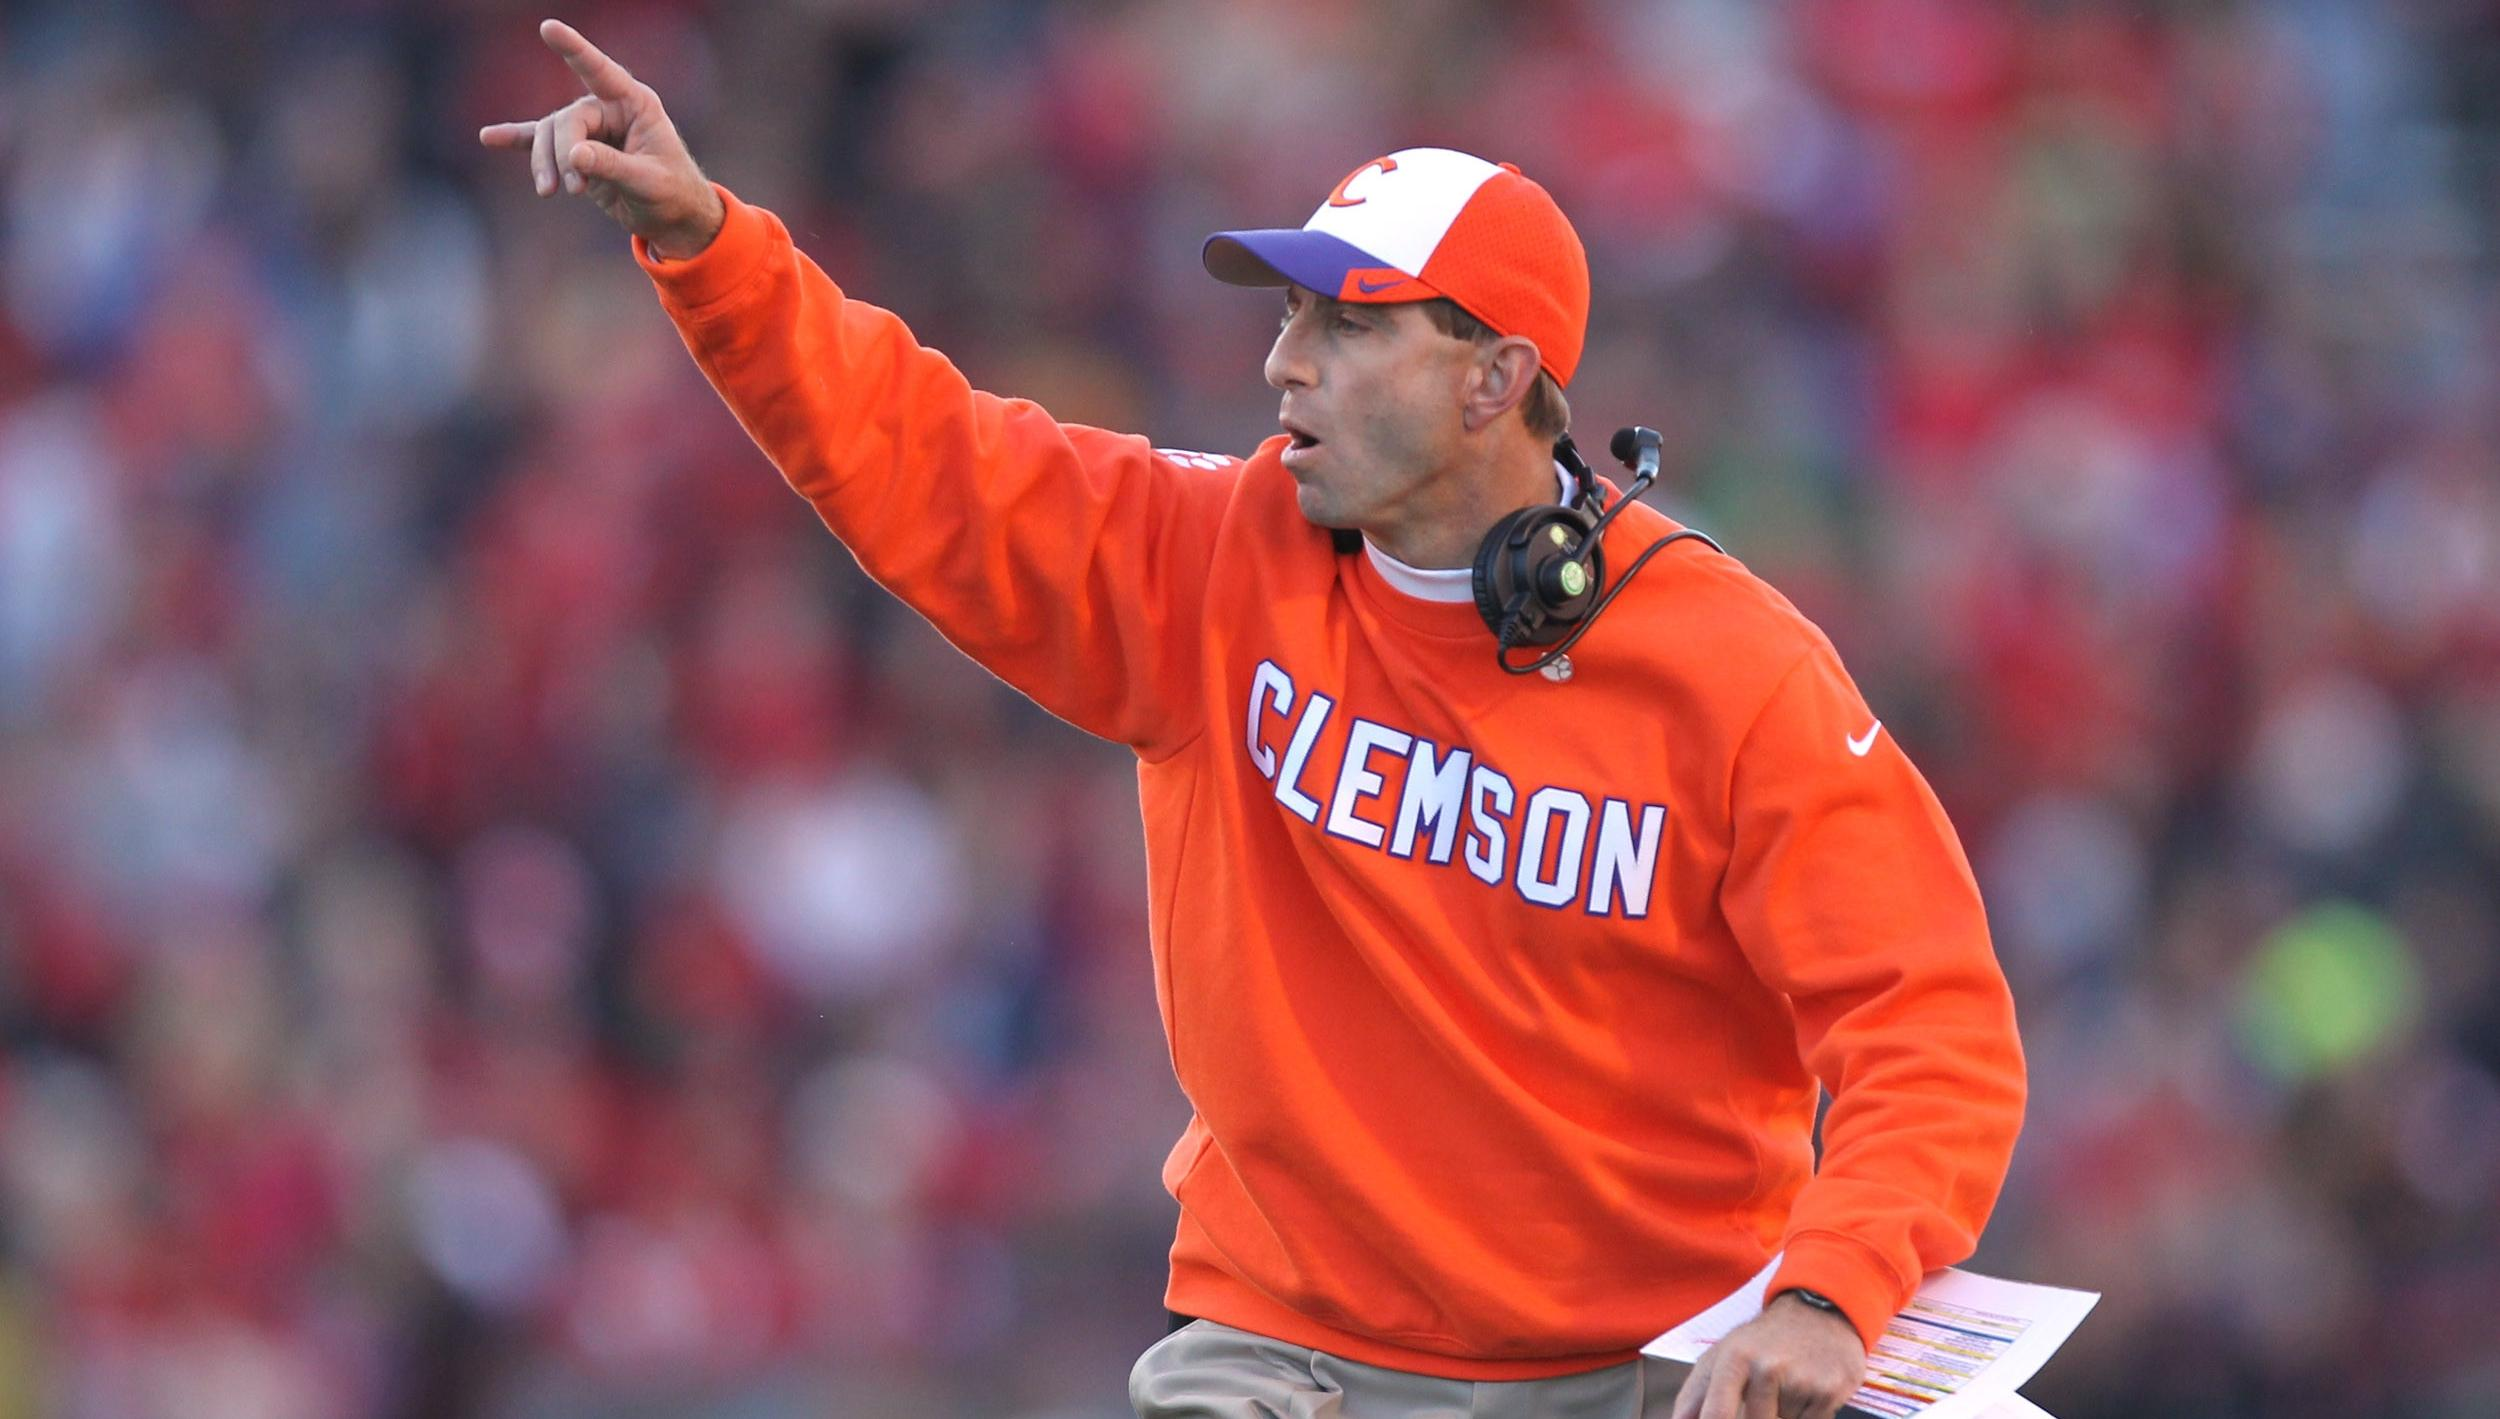 Dabo Swinney Show Now Available on ClemsonTigers.com